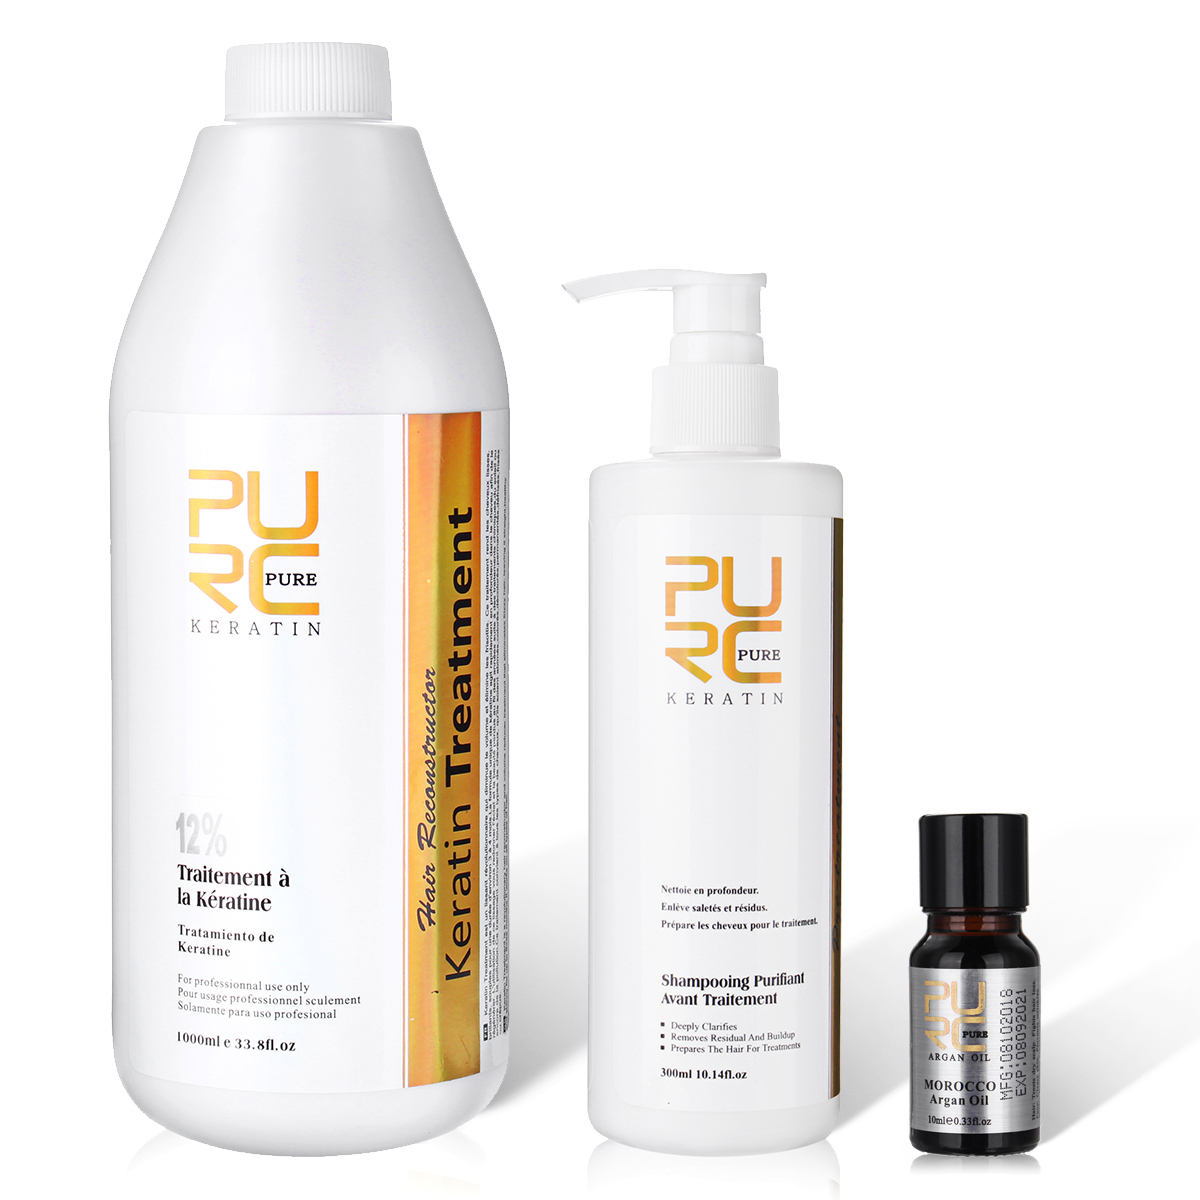 PURE Brazilian Keratin Treatment 5% 1000ml Hair Repair+Purifying Shampoo 300ml